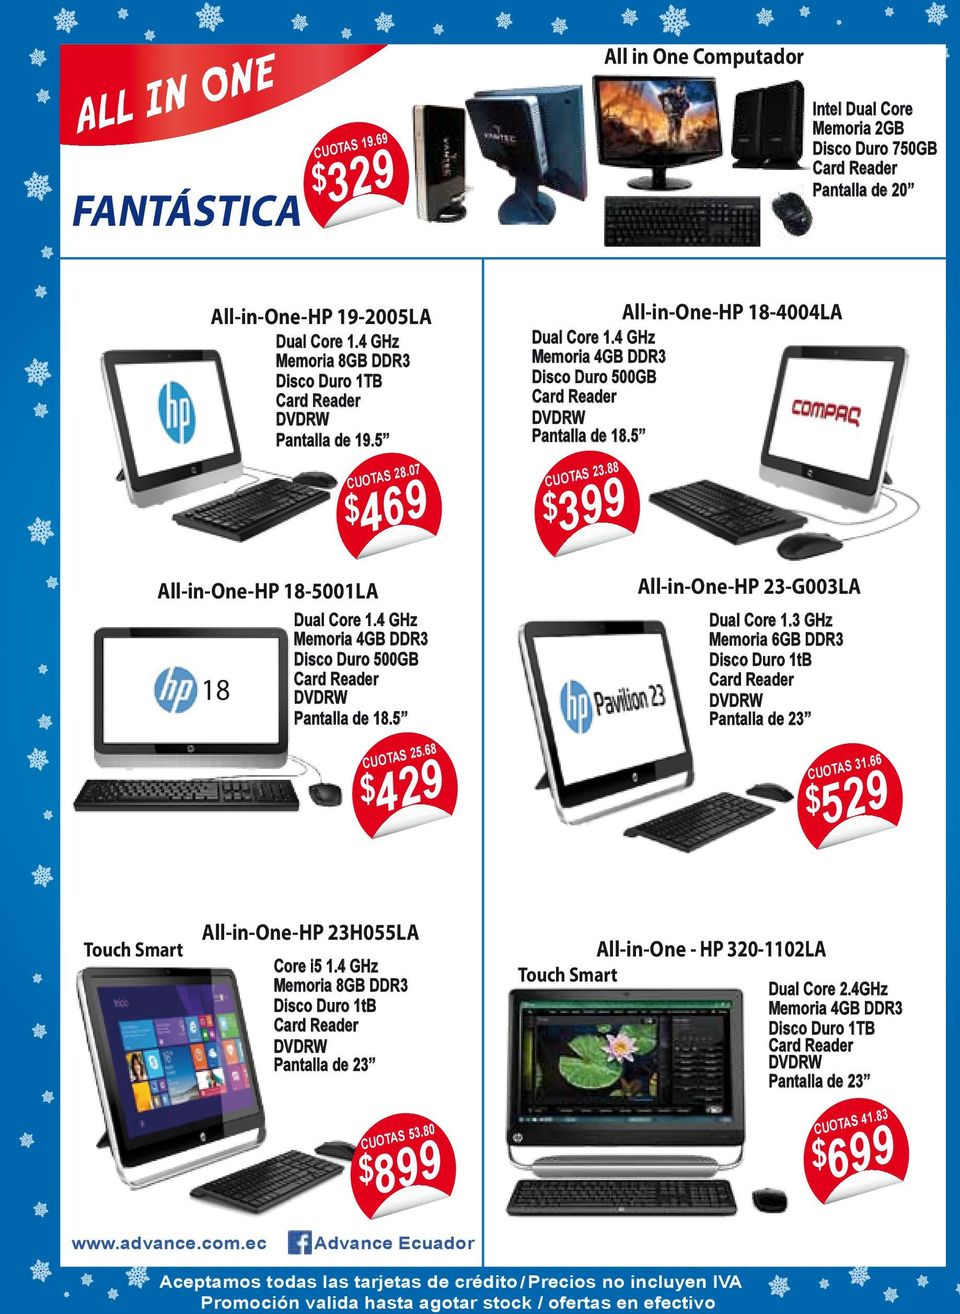 88 All-in-One-HP 18-5001LA 18 Dual Core 1.4 GHz Pantalla de 18.5 429 $ CUOTAS 25.68 All-in-One-HP 23-G003LA Dual Core 1.